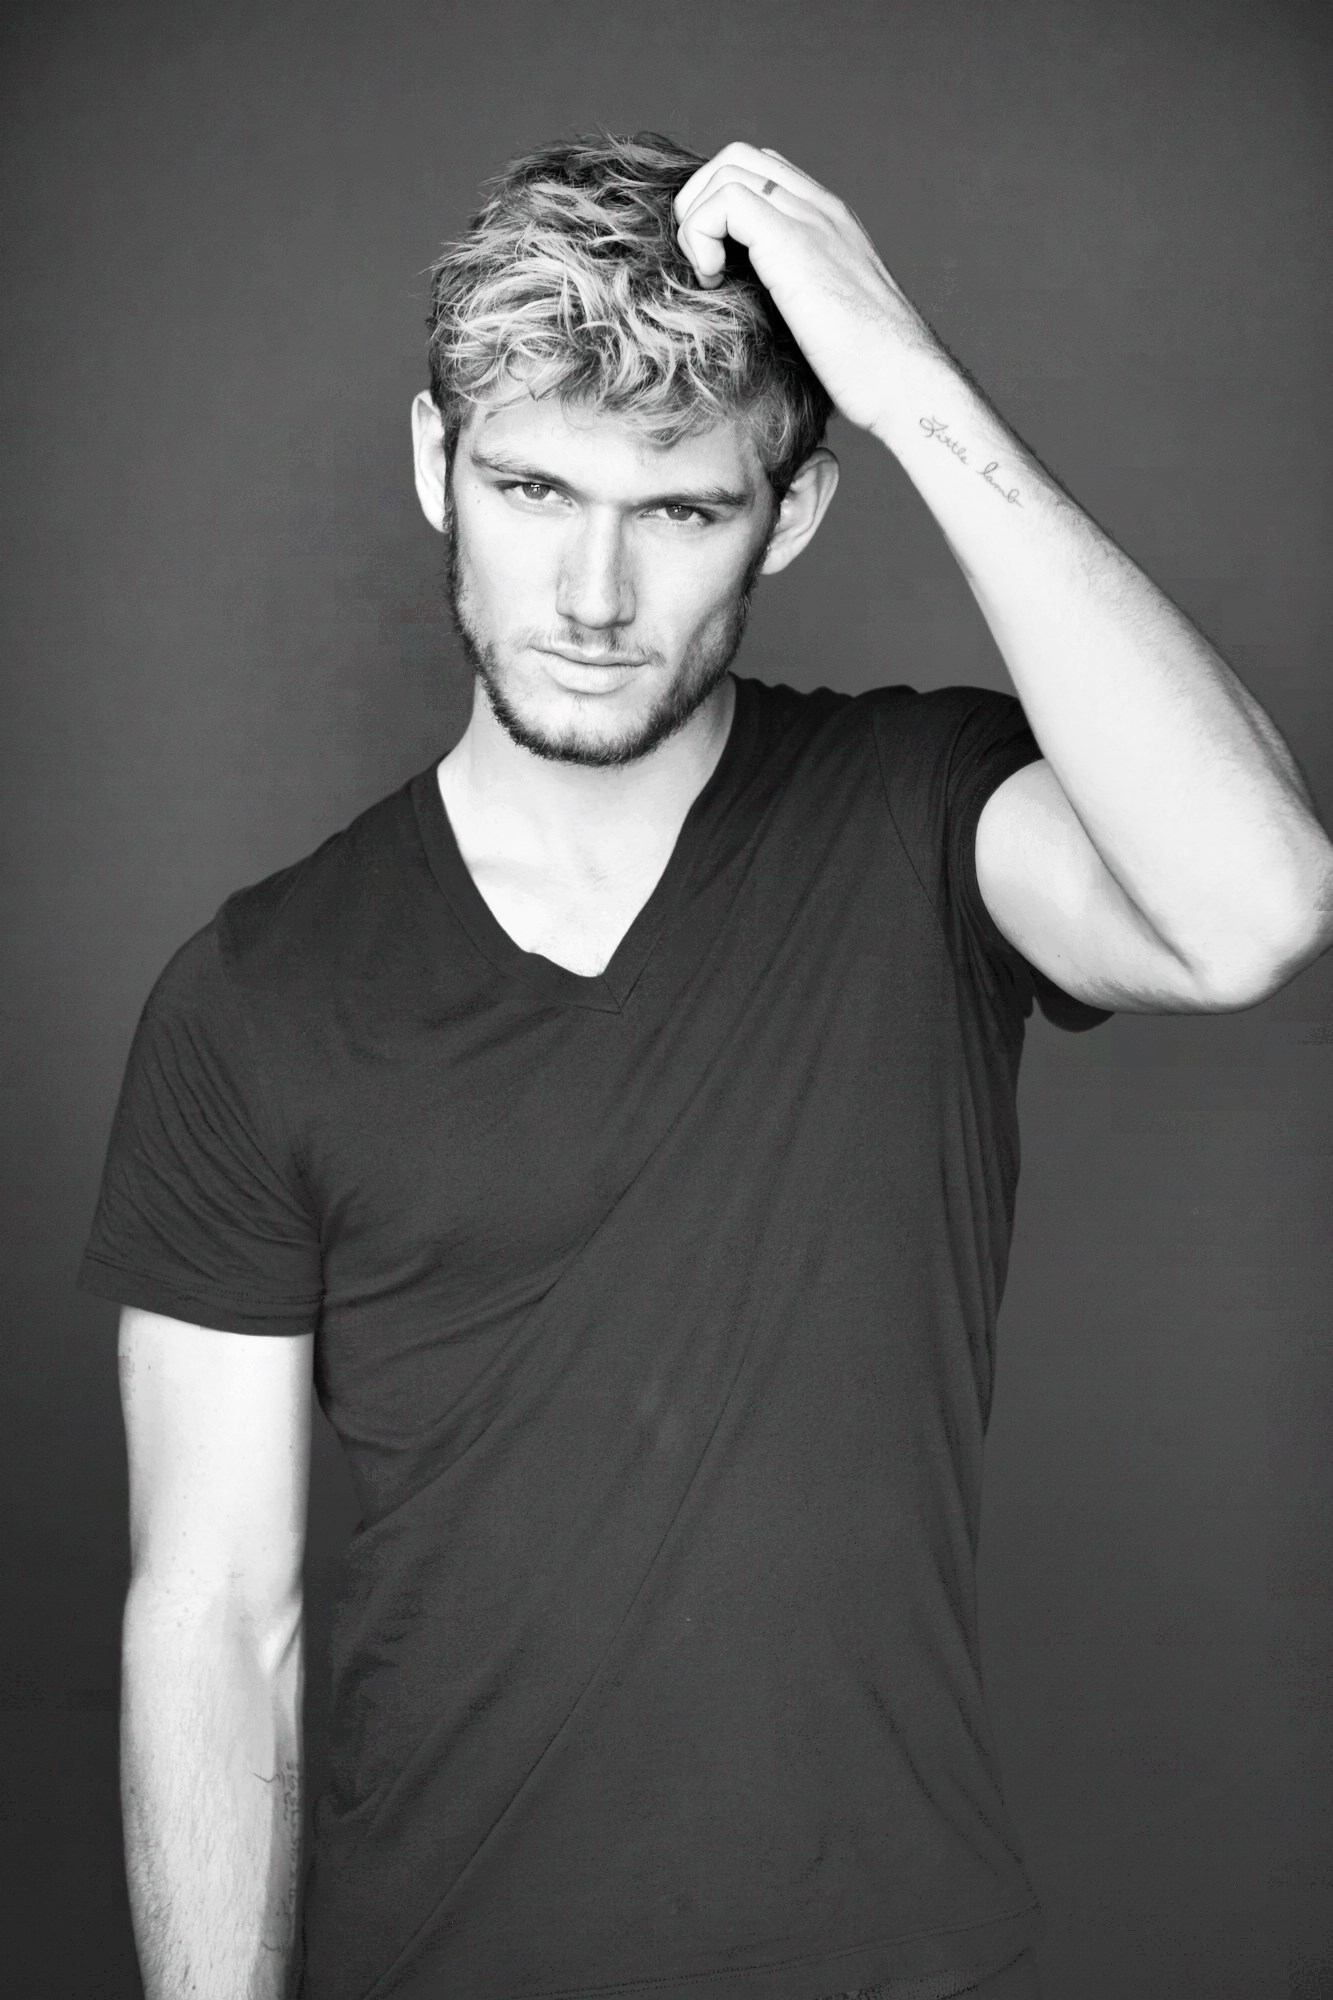 Alex Pettyfer Known People Famous People News And Ideas And Designs